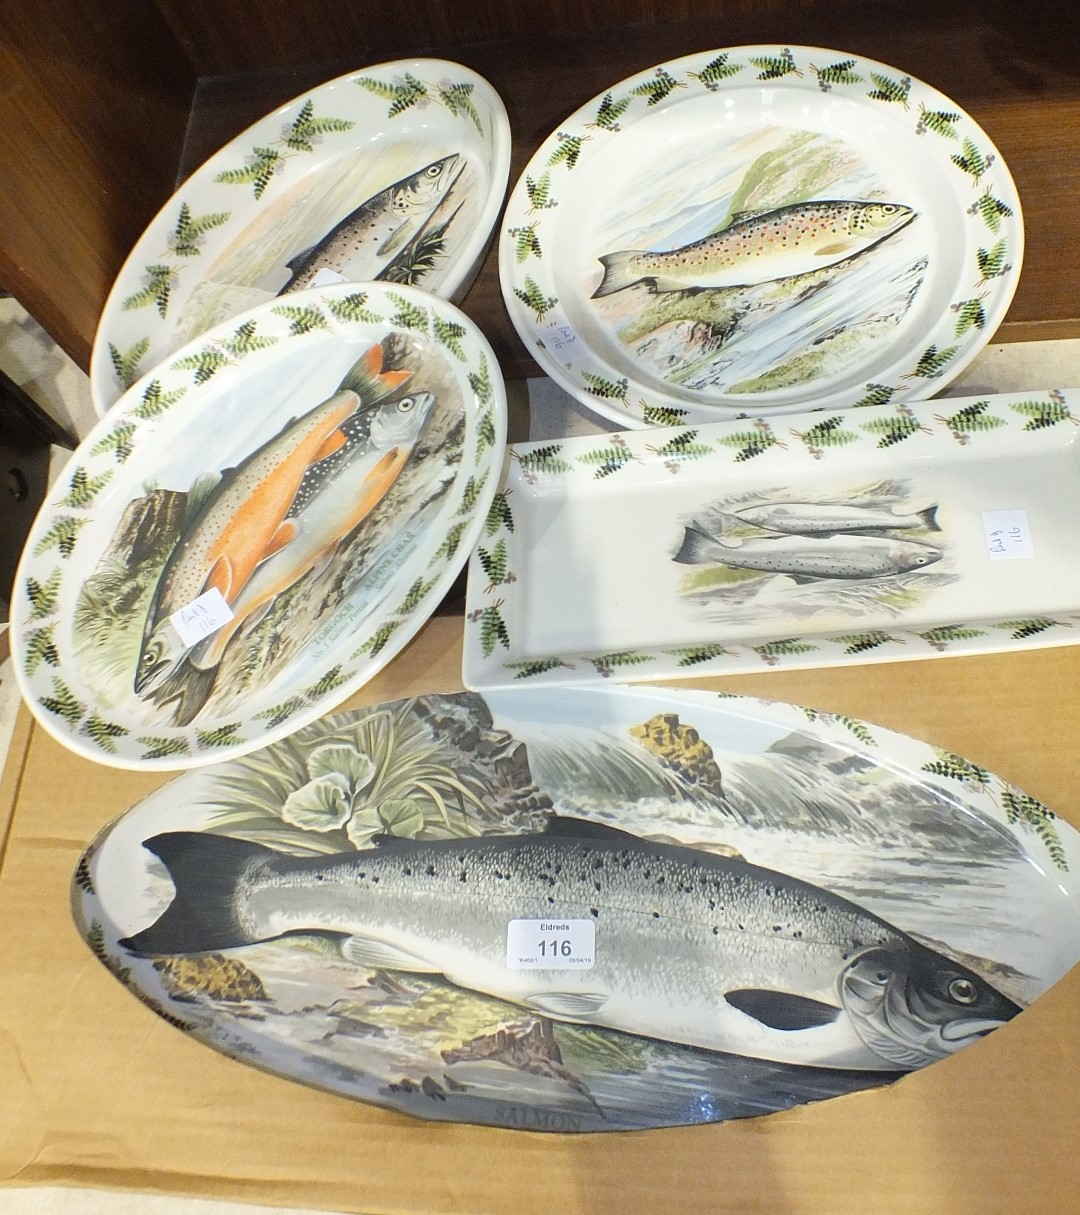 Lot 116 - Five pieces of Portmeirion The Complete Angler, British Fishes decorative wares: two shallow oval